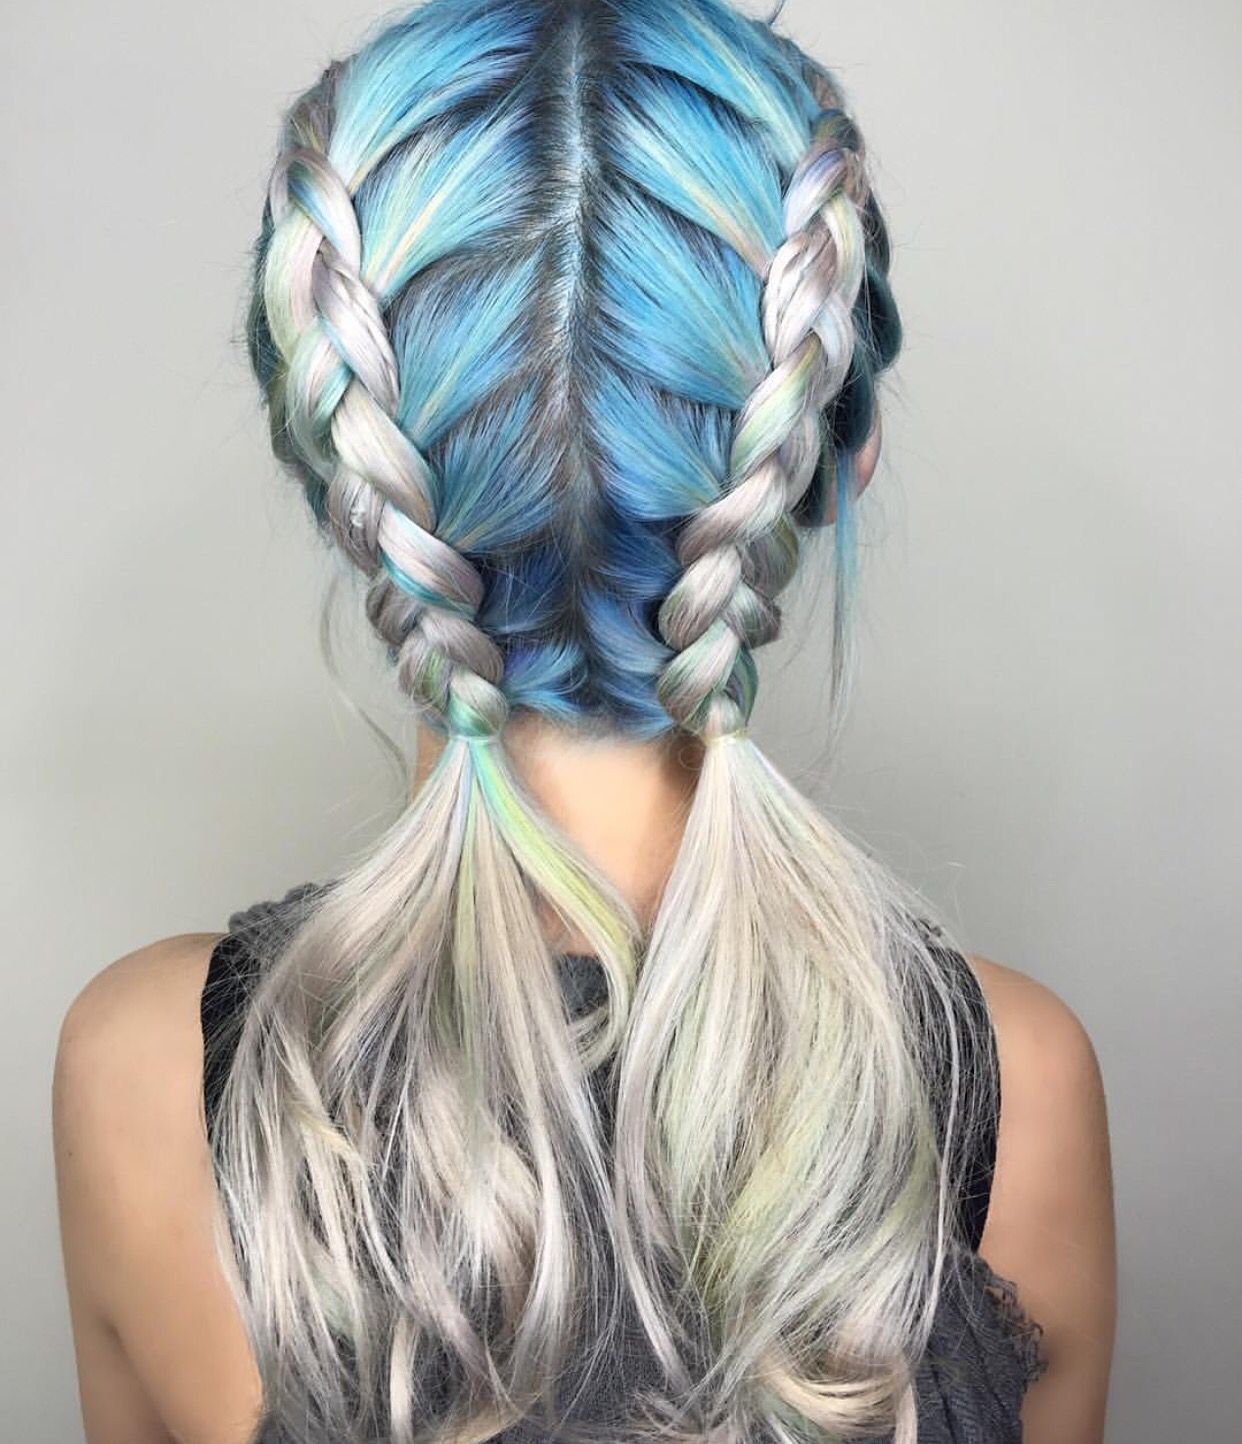 Metallic Blue And Silver Hair Color Design Dressed In Double Dutch